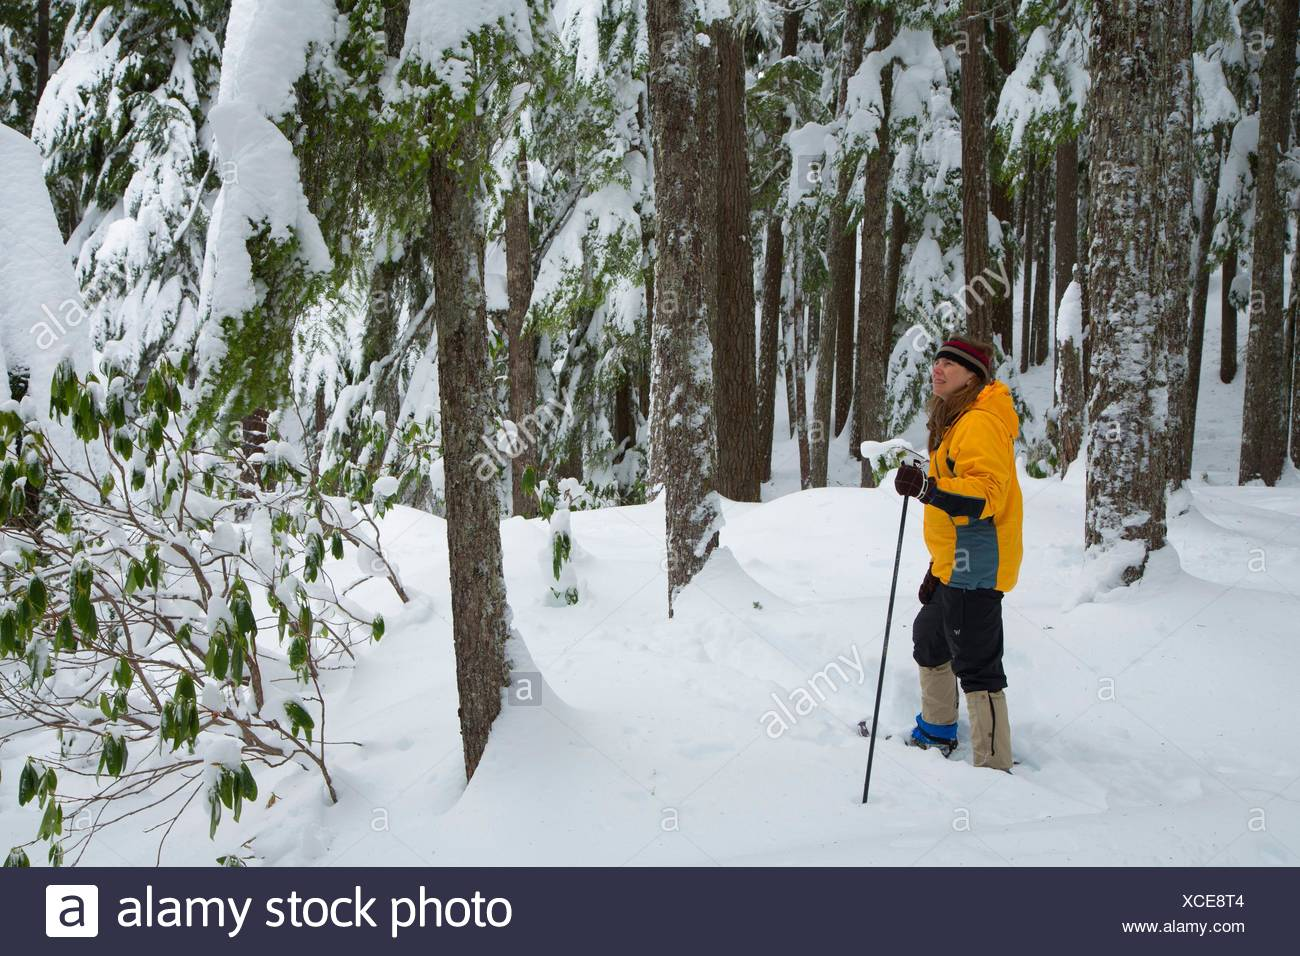 Snowshoeing along Diamond Falls Trail, Willamette National Forest, Oregon. - Stock Image